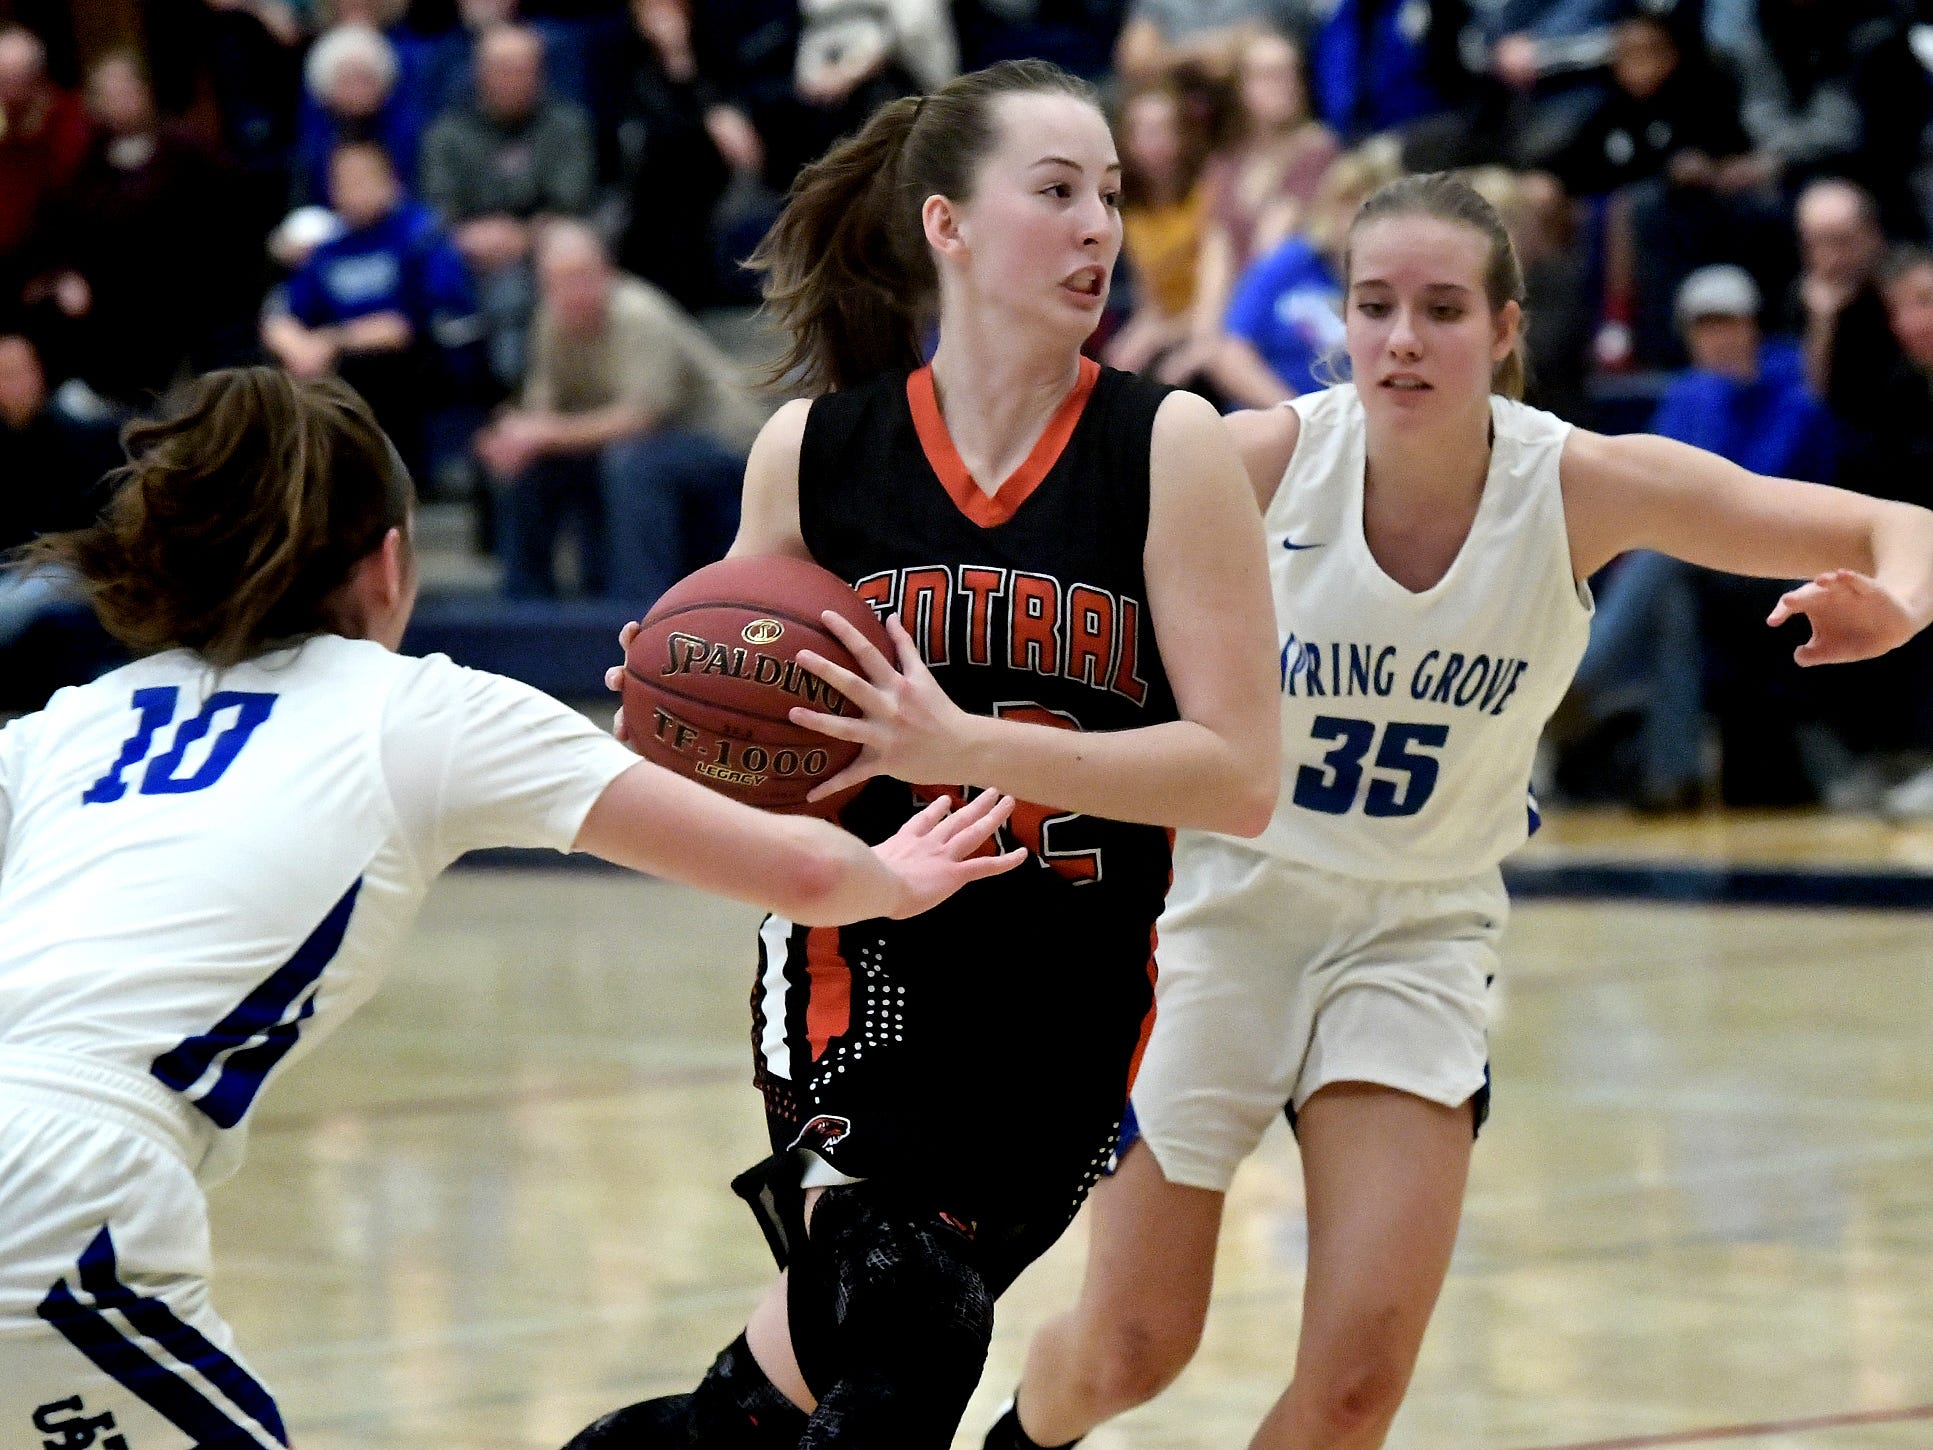 Central York's Kara Davies drives with Spring Grove's Ellie Glass, left, and Brooklyn Naylor defending during basketball action at Spring Grove Tuesday, Jan. 8, 2019. Bill Kalina photo